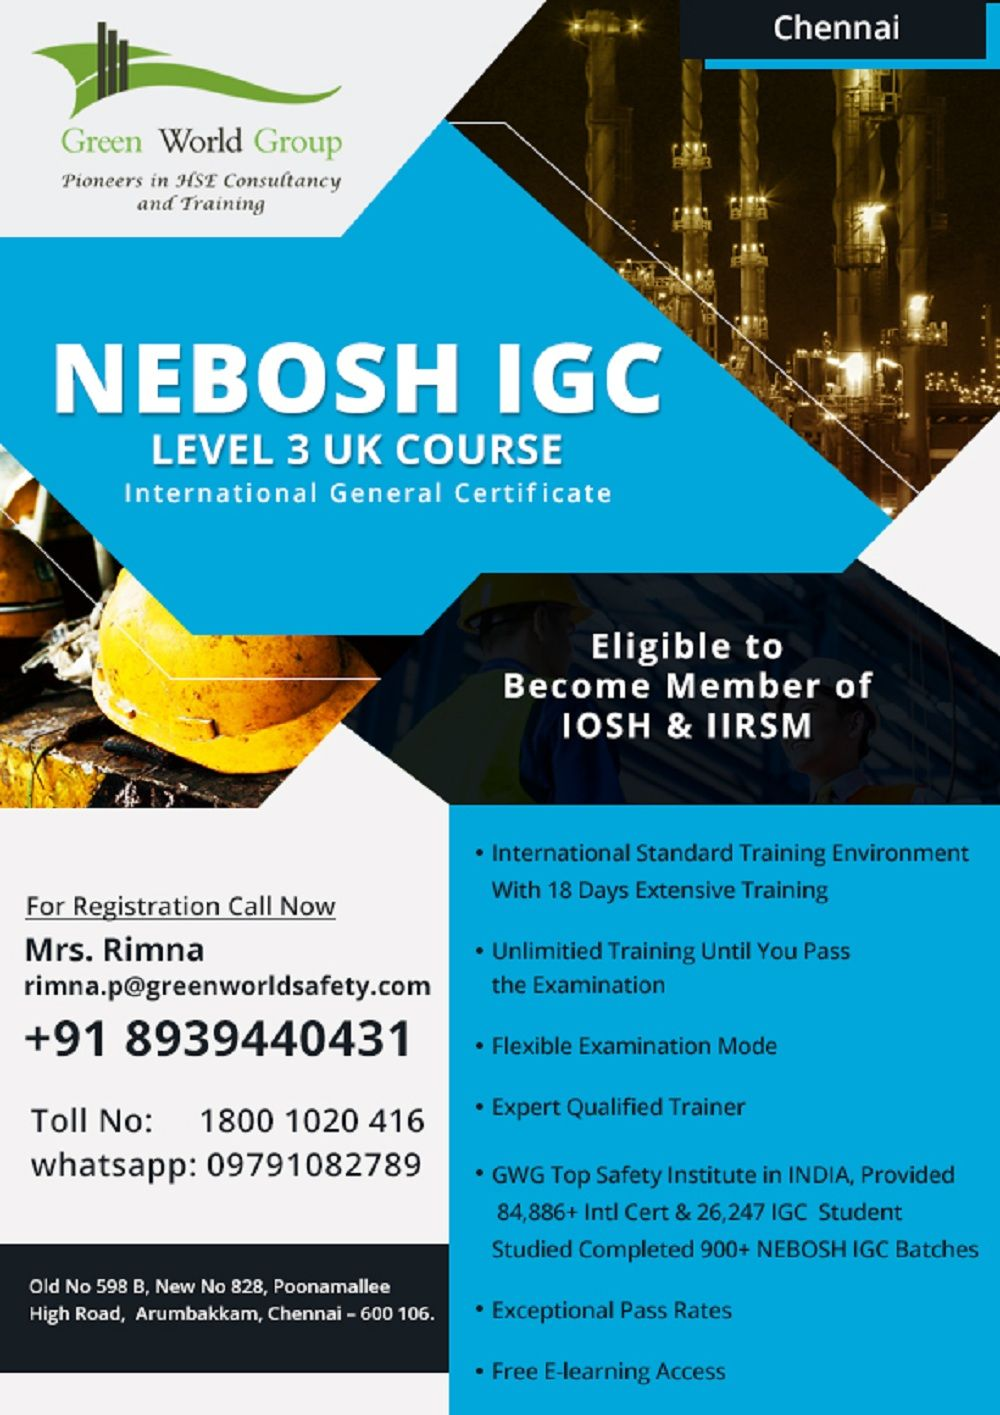 NEBOSH Course in Chennai Safety courses, Occupational